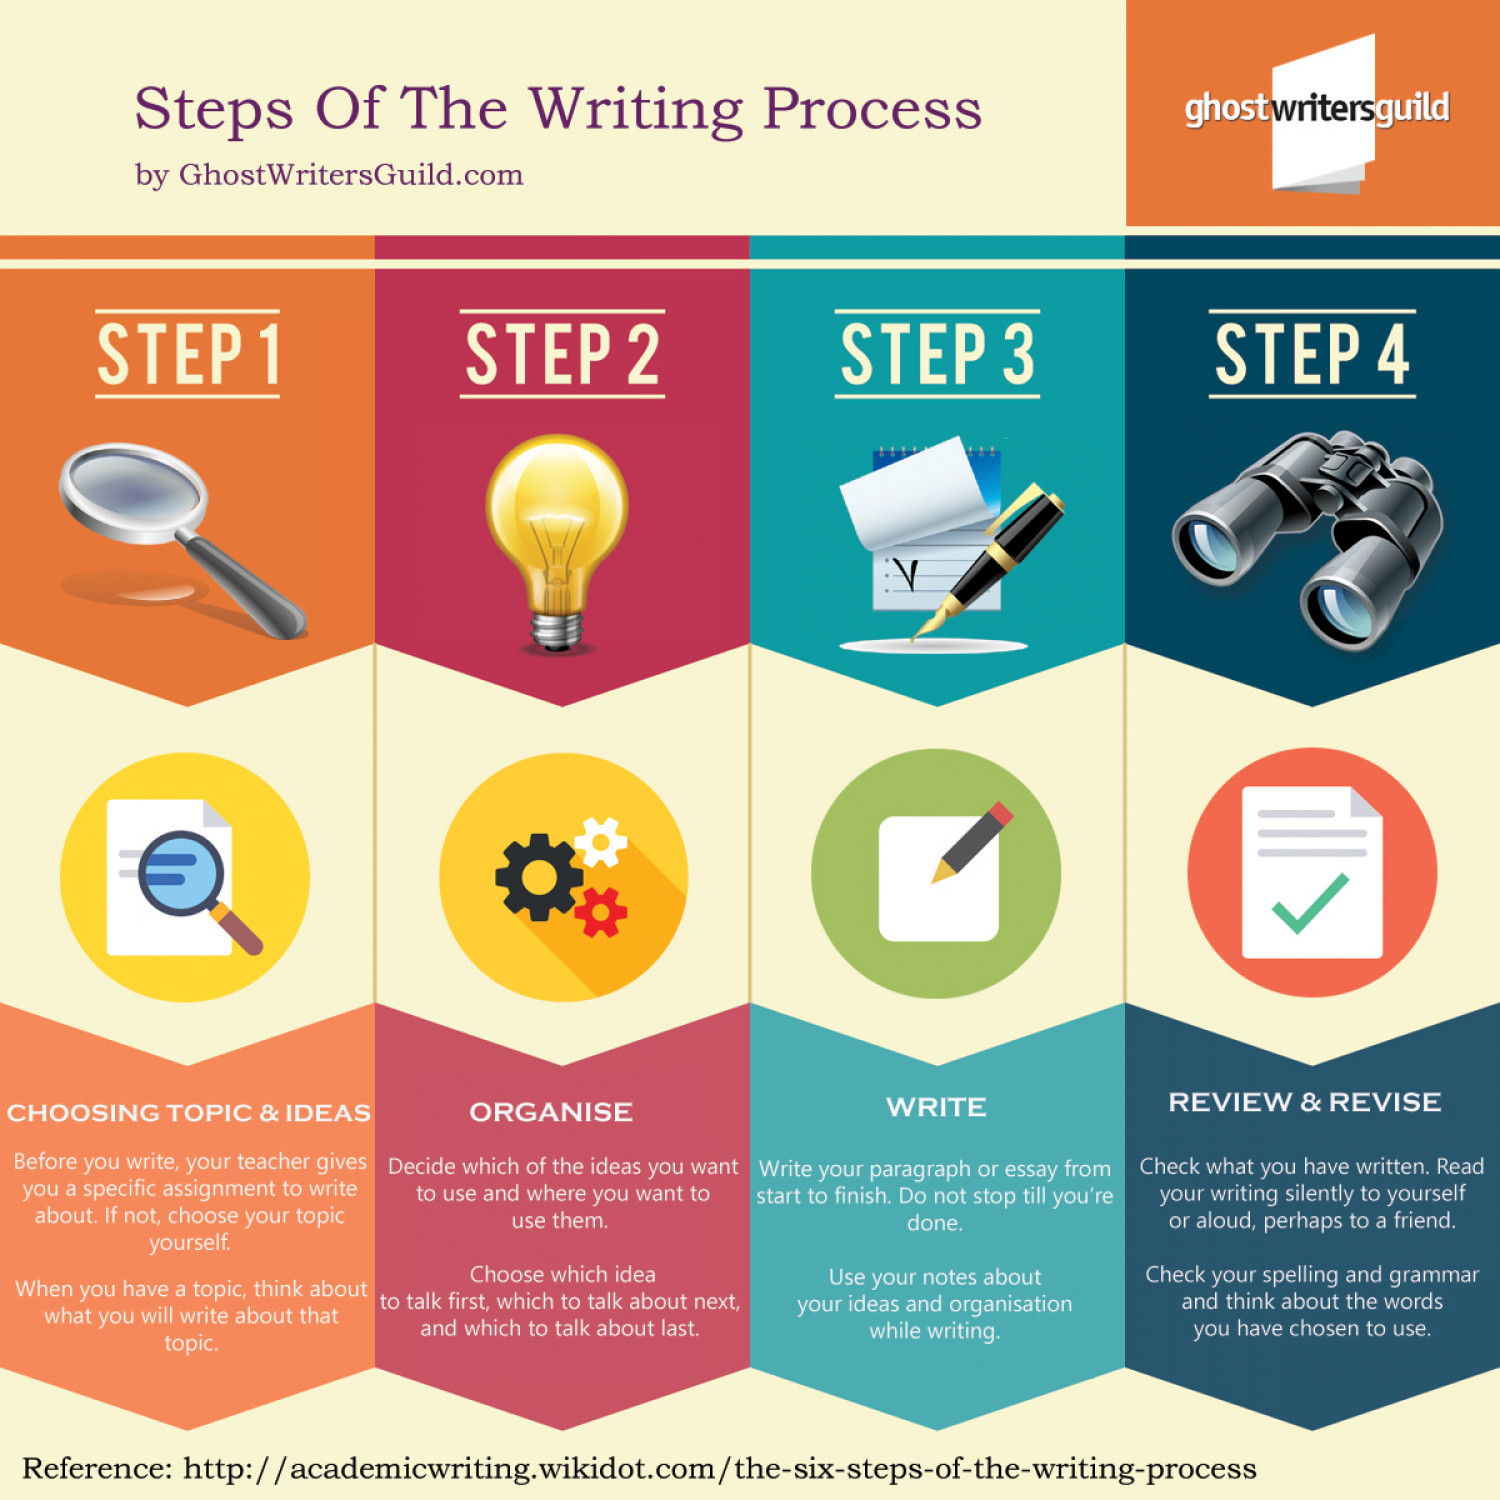 Steps Of The Writing Process Infographic